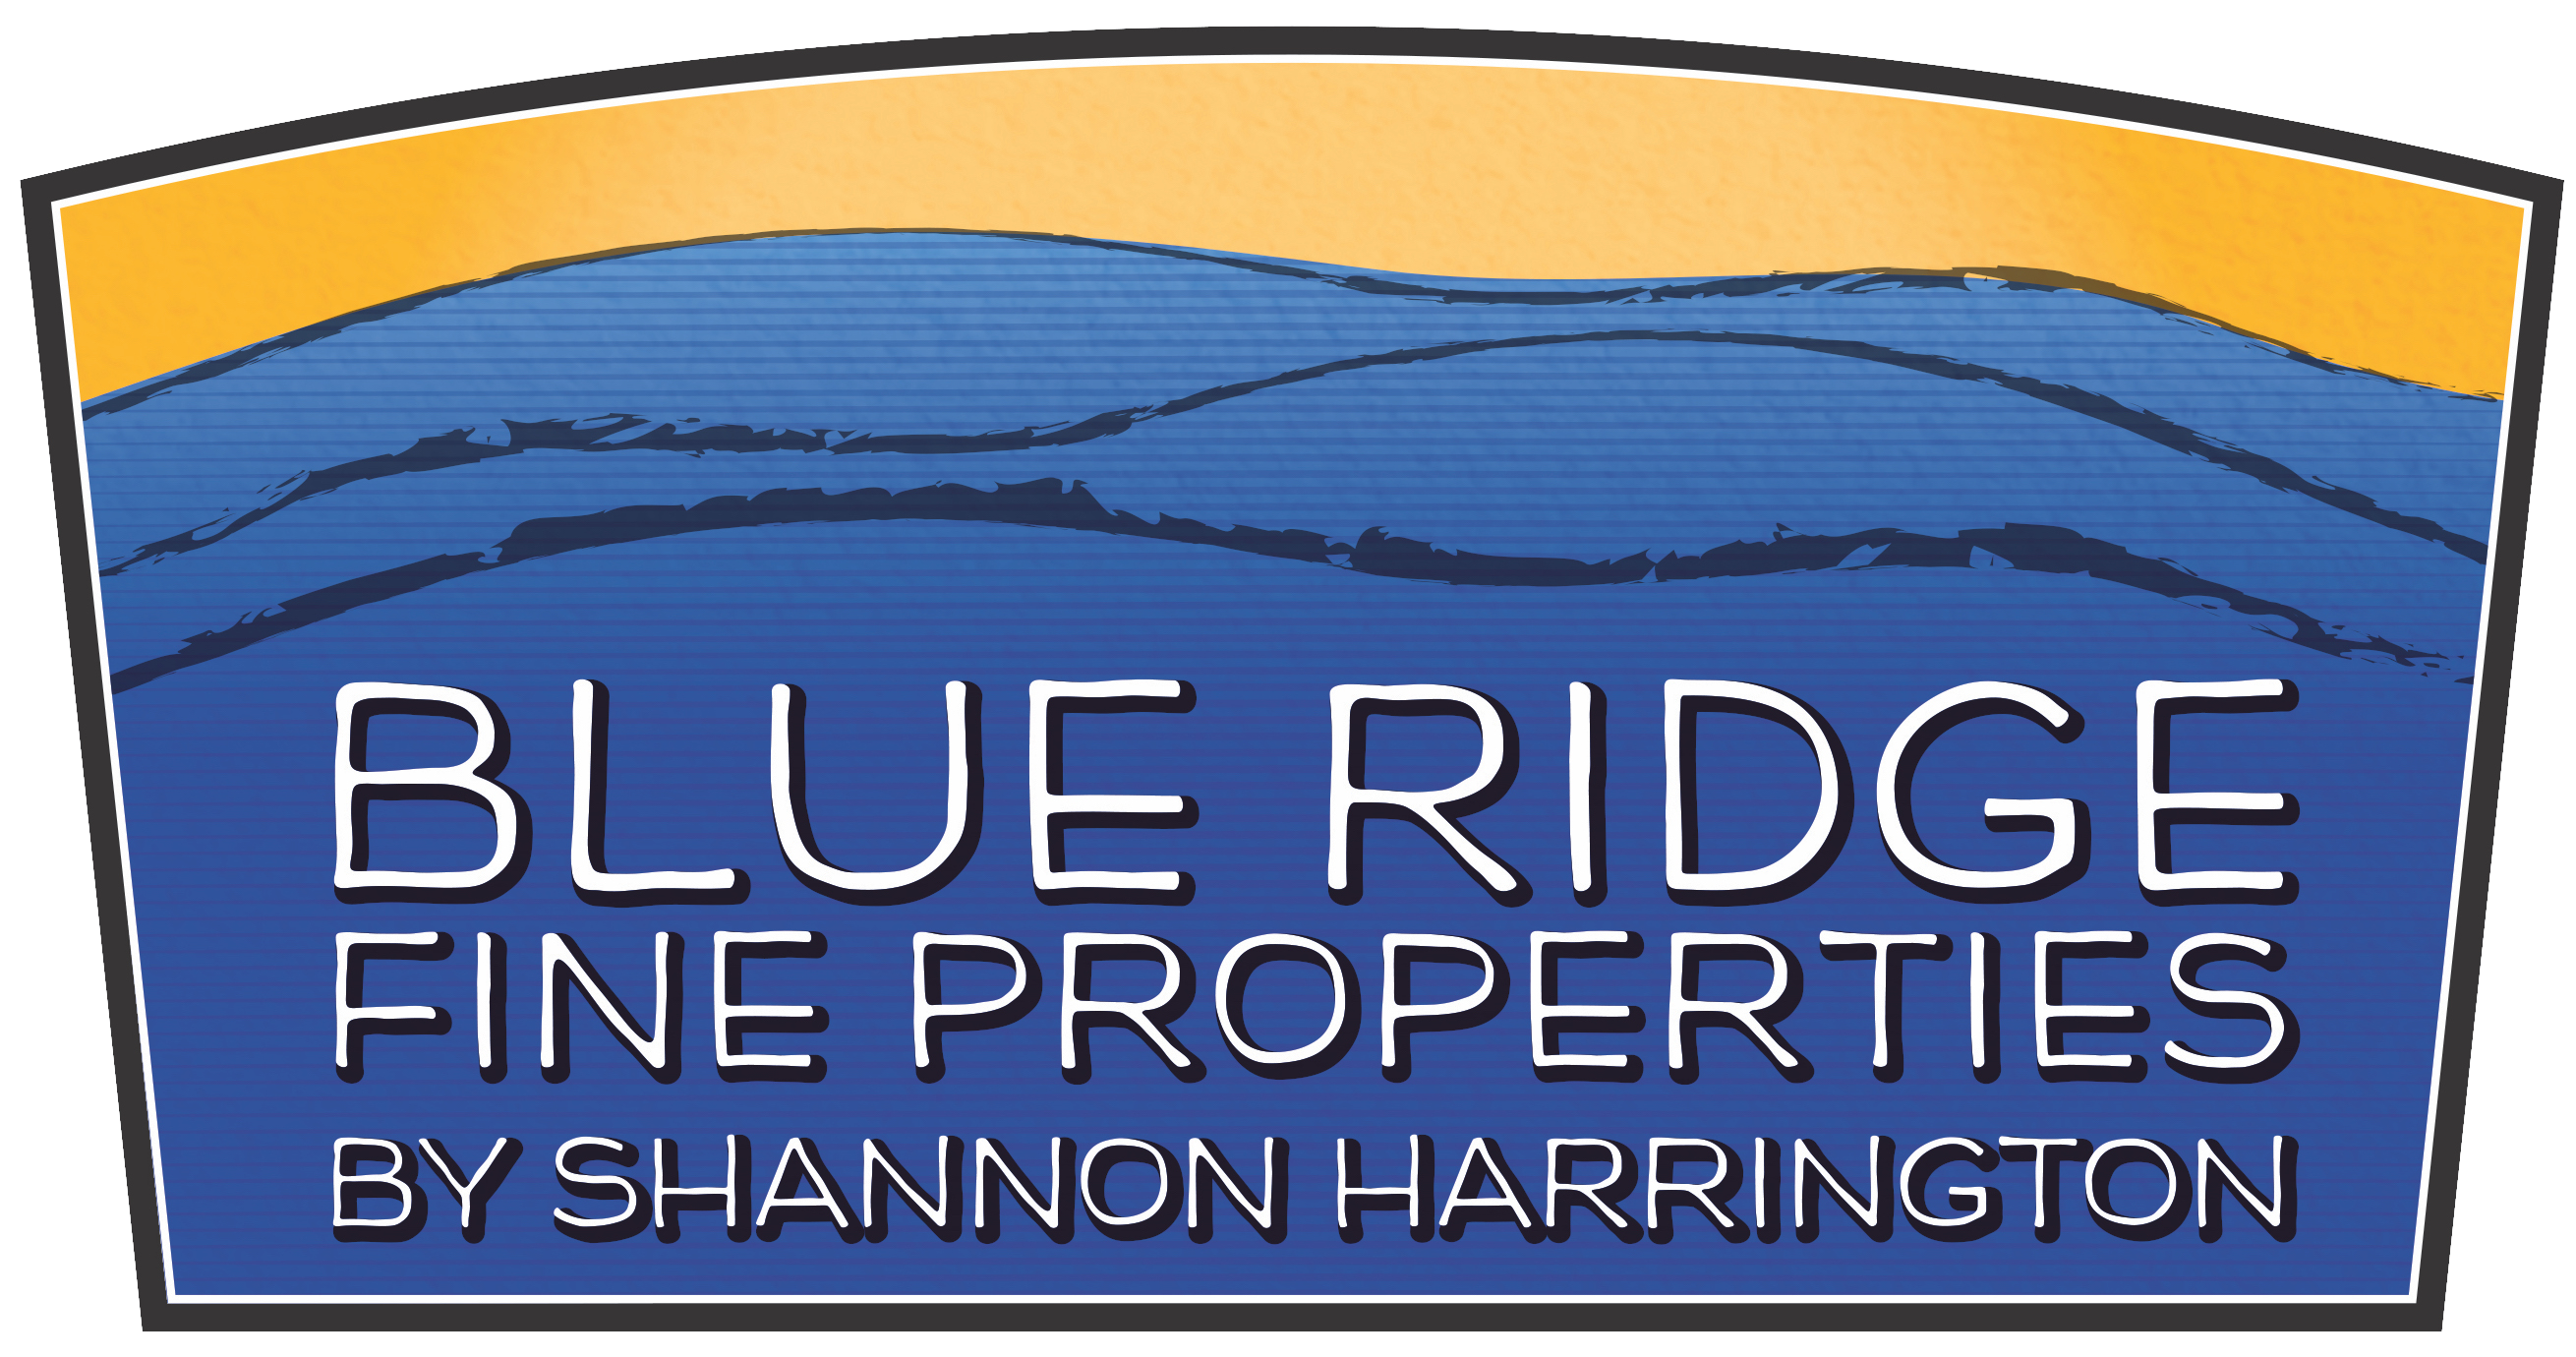 Blue Ridge Fine Properties, by Shannon Harrington